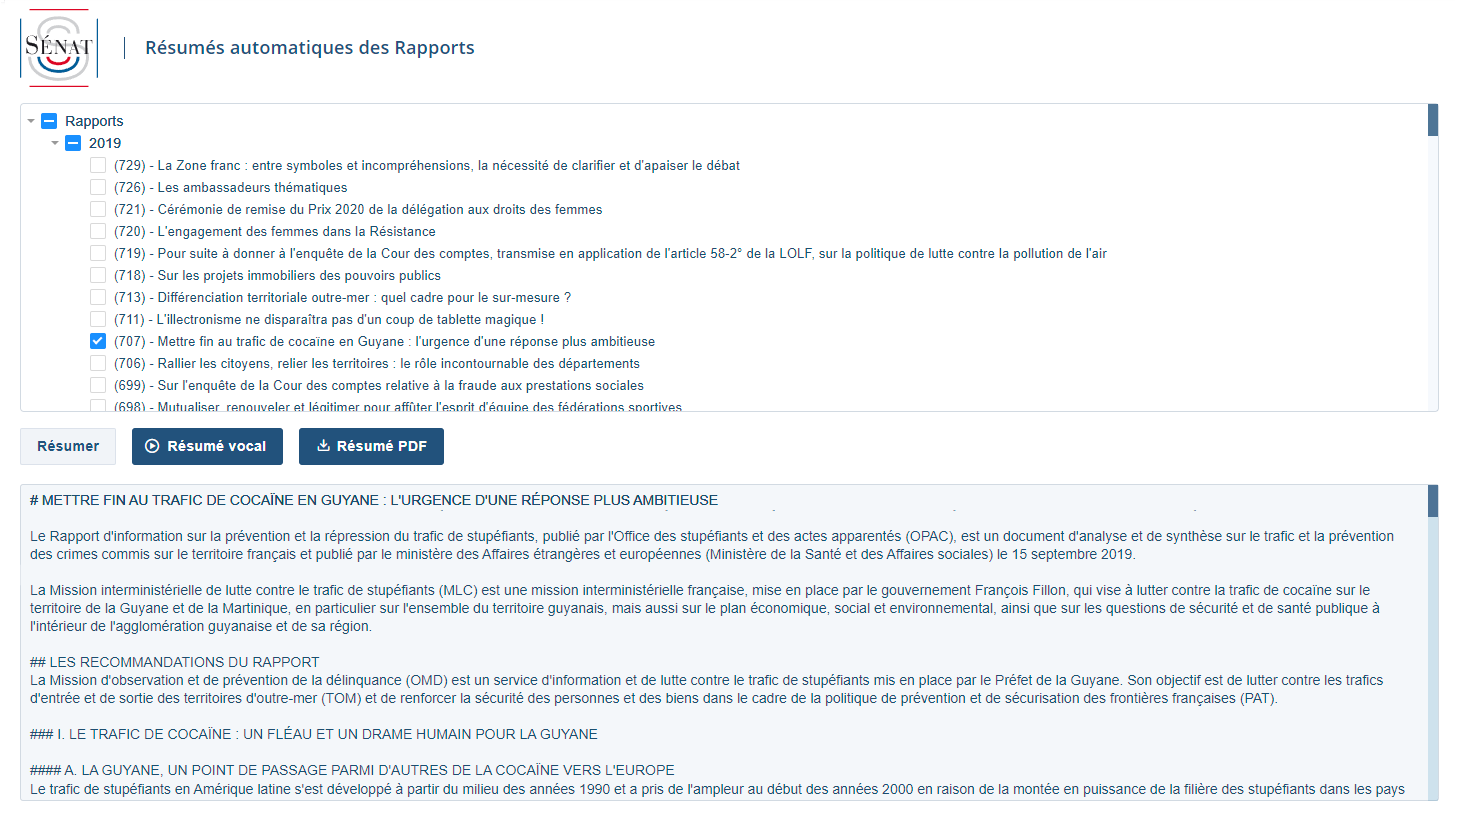 Sénat - Automatic PDF or markdown summaries for pages-long official Reports from the French Senate.